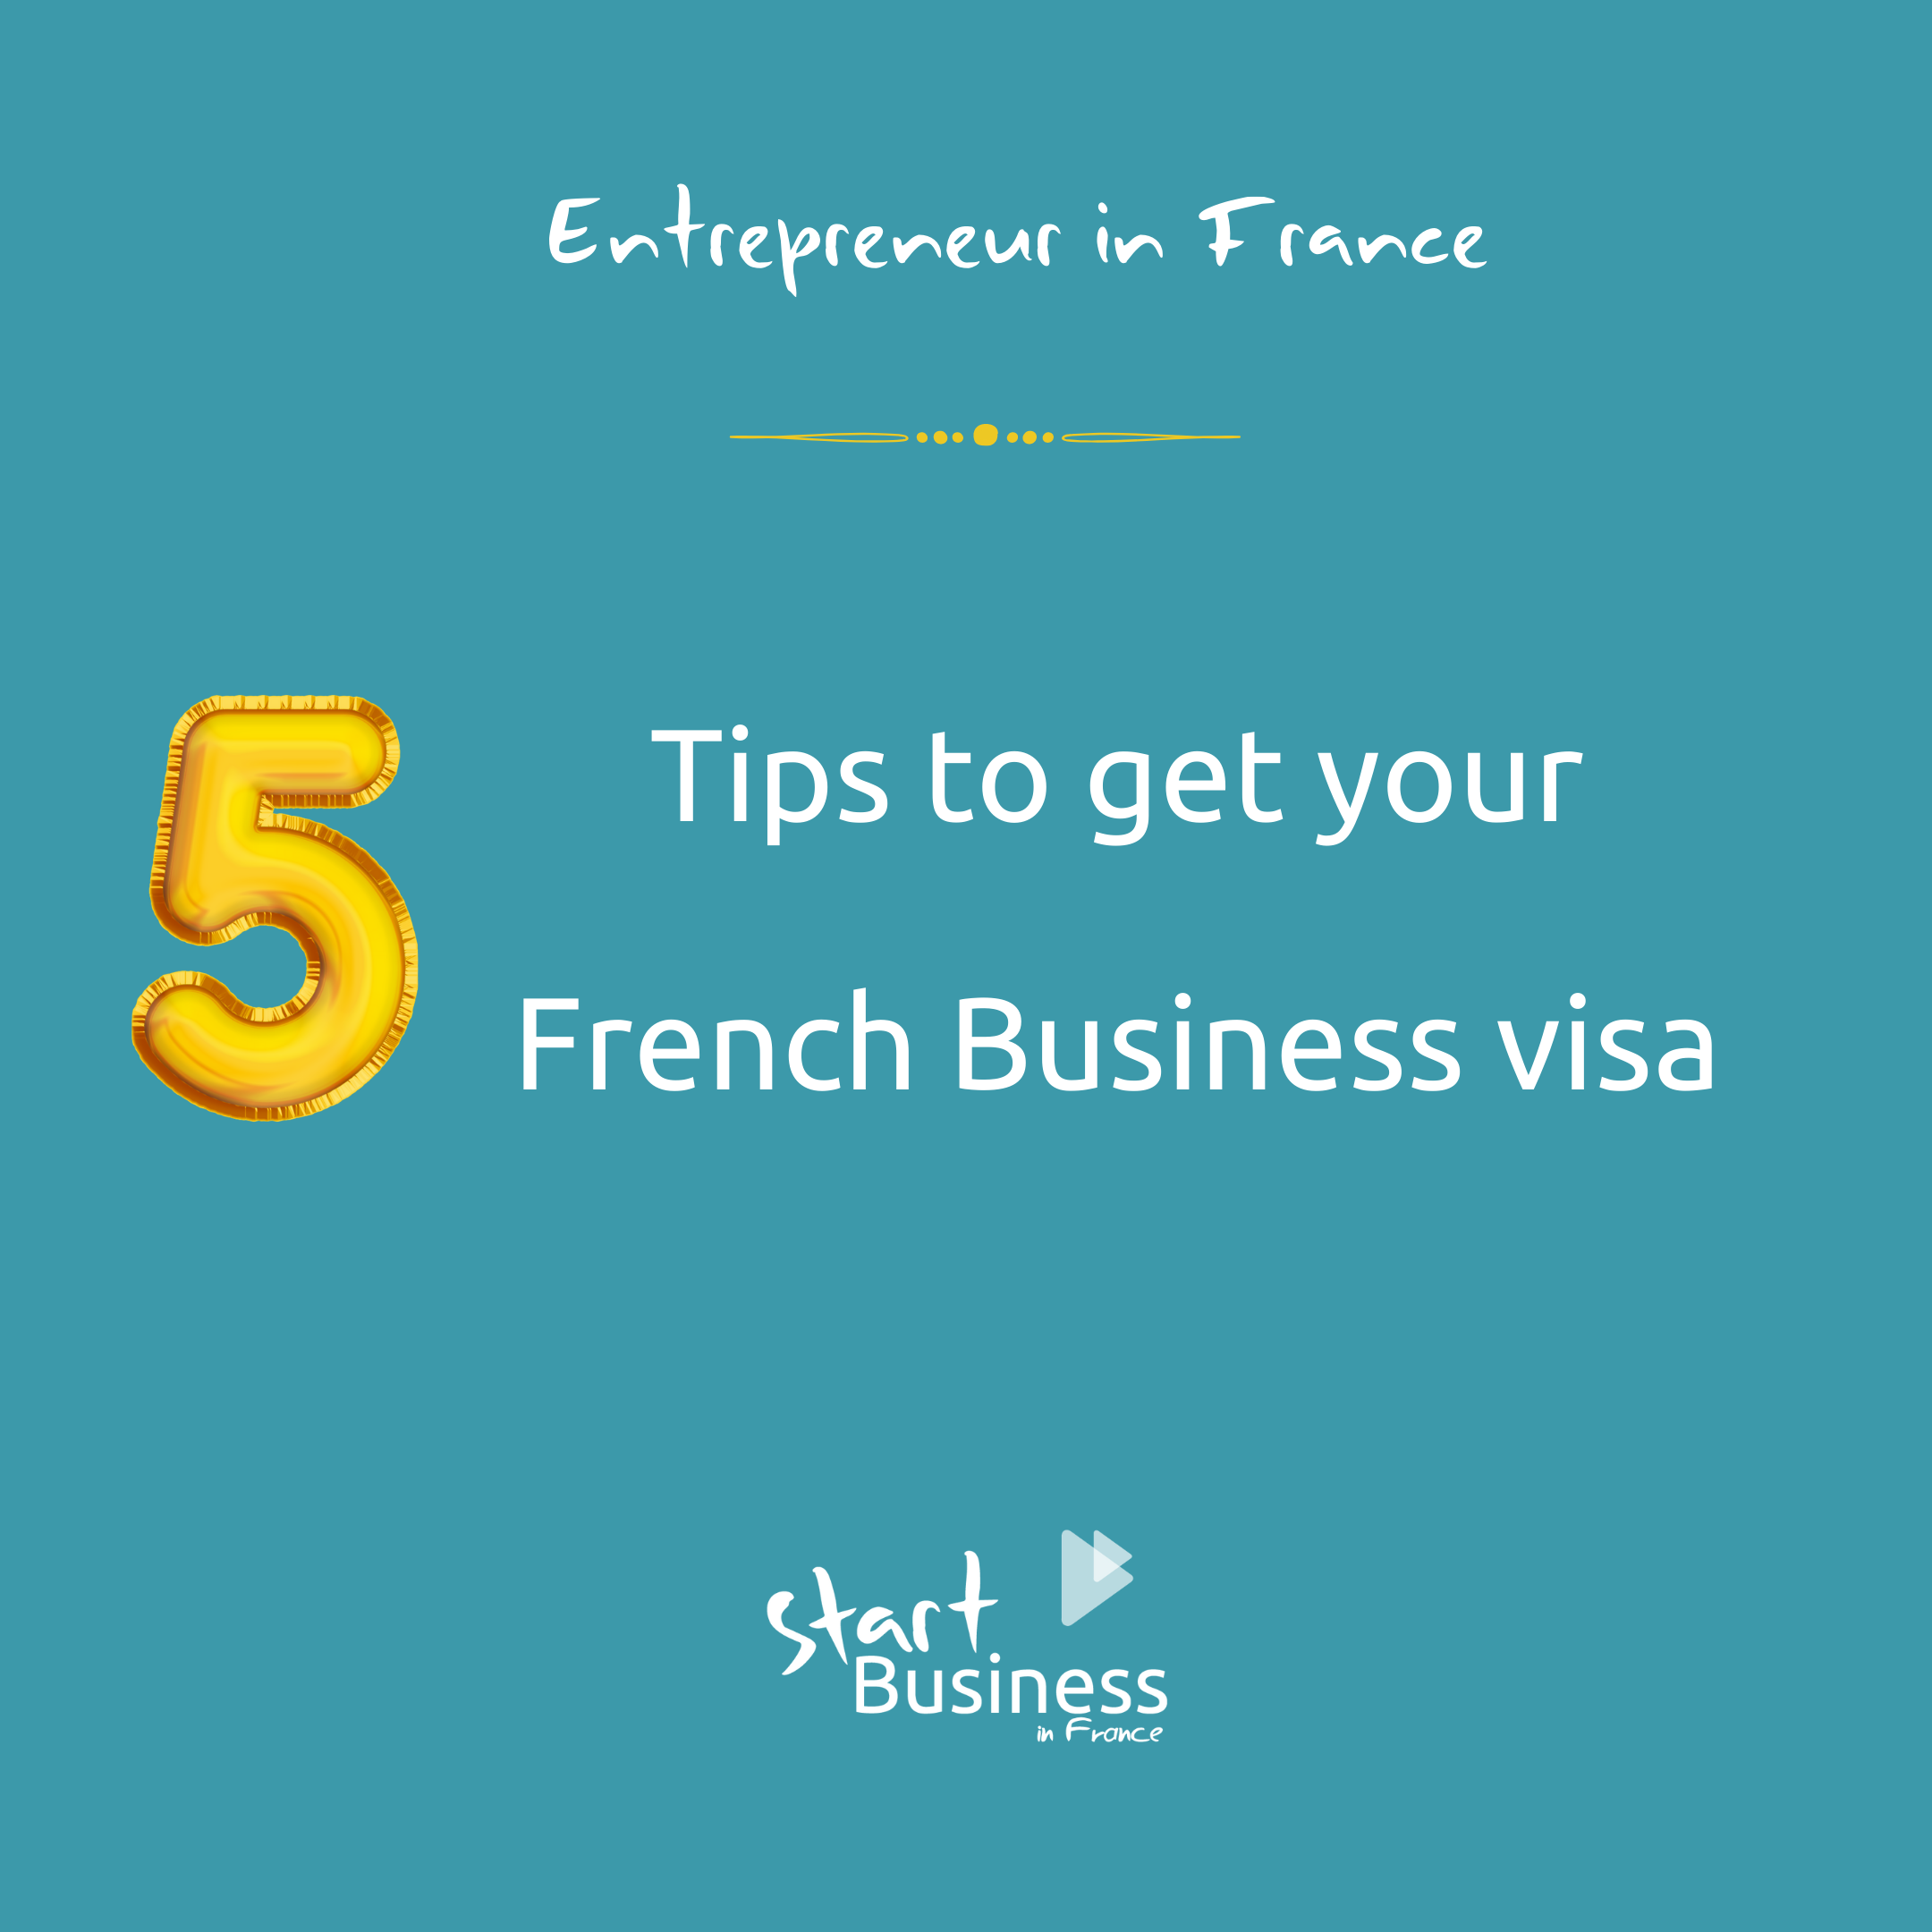 5 tips to get your French business visa